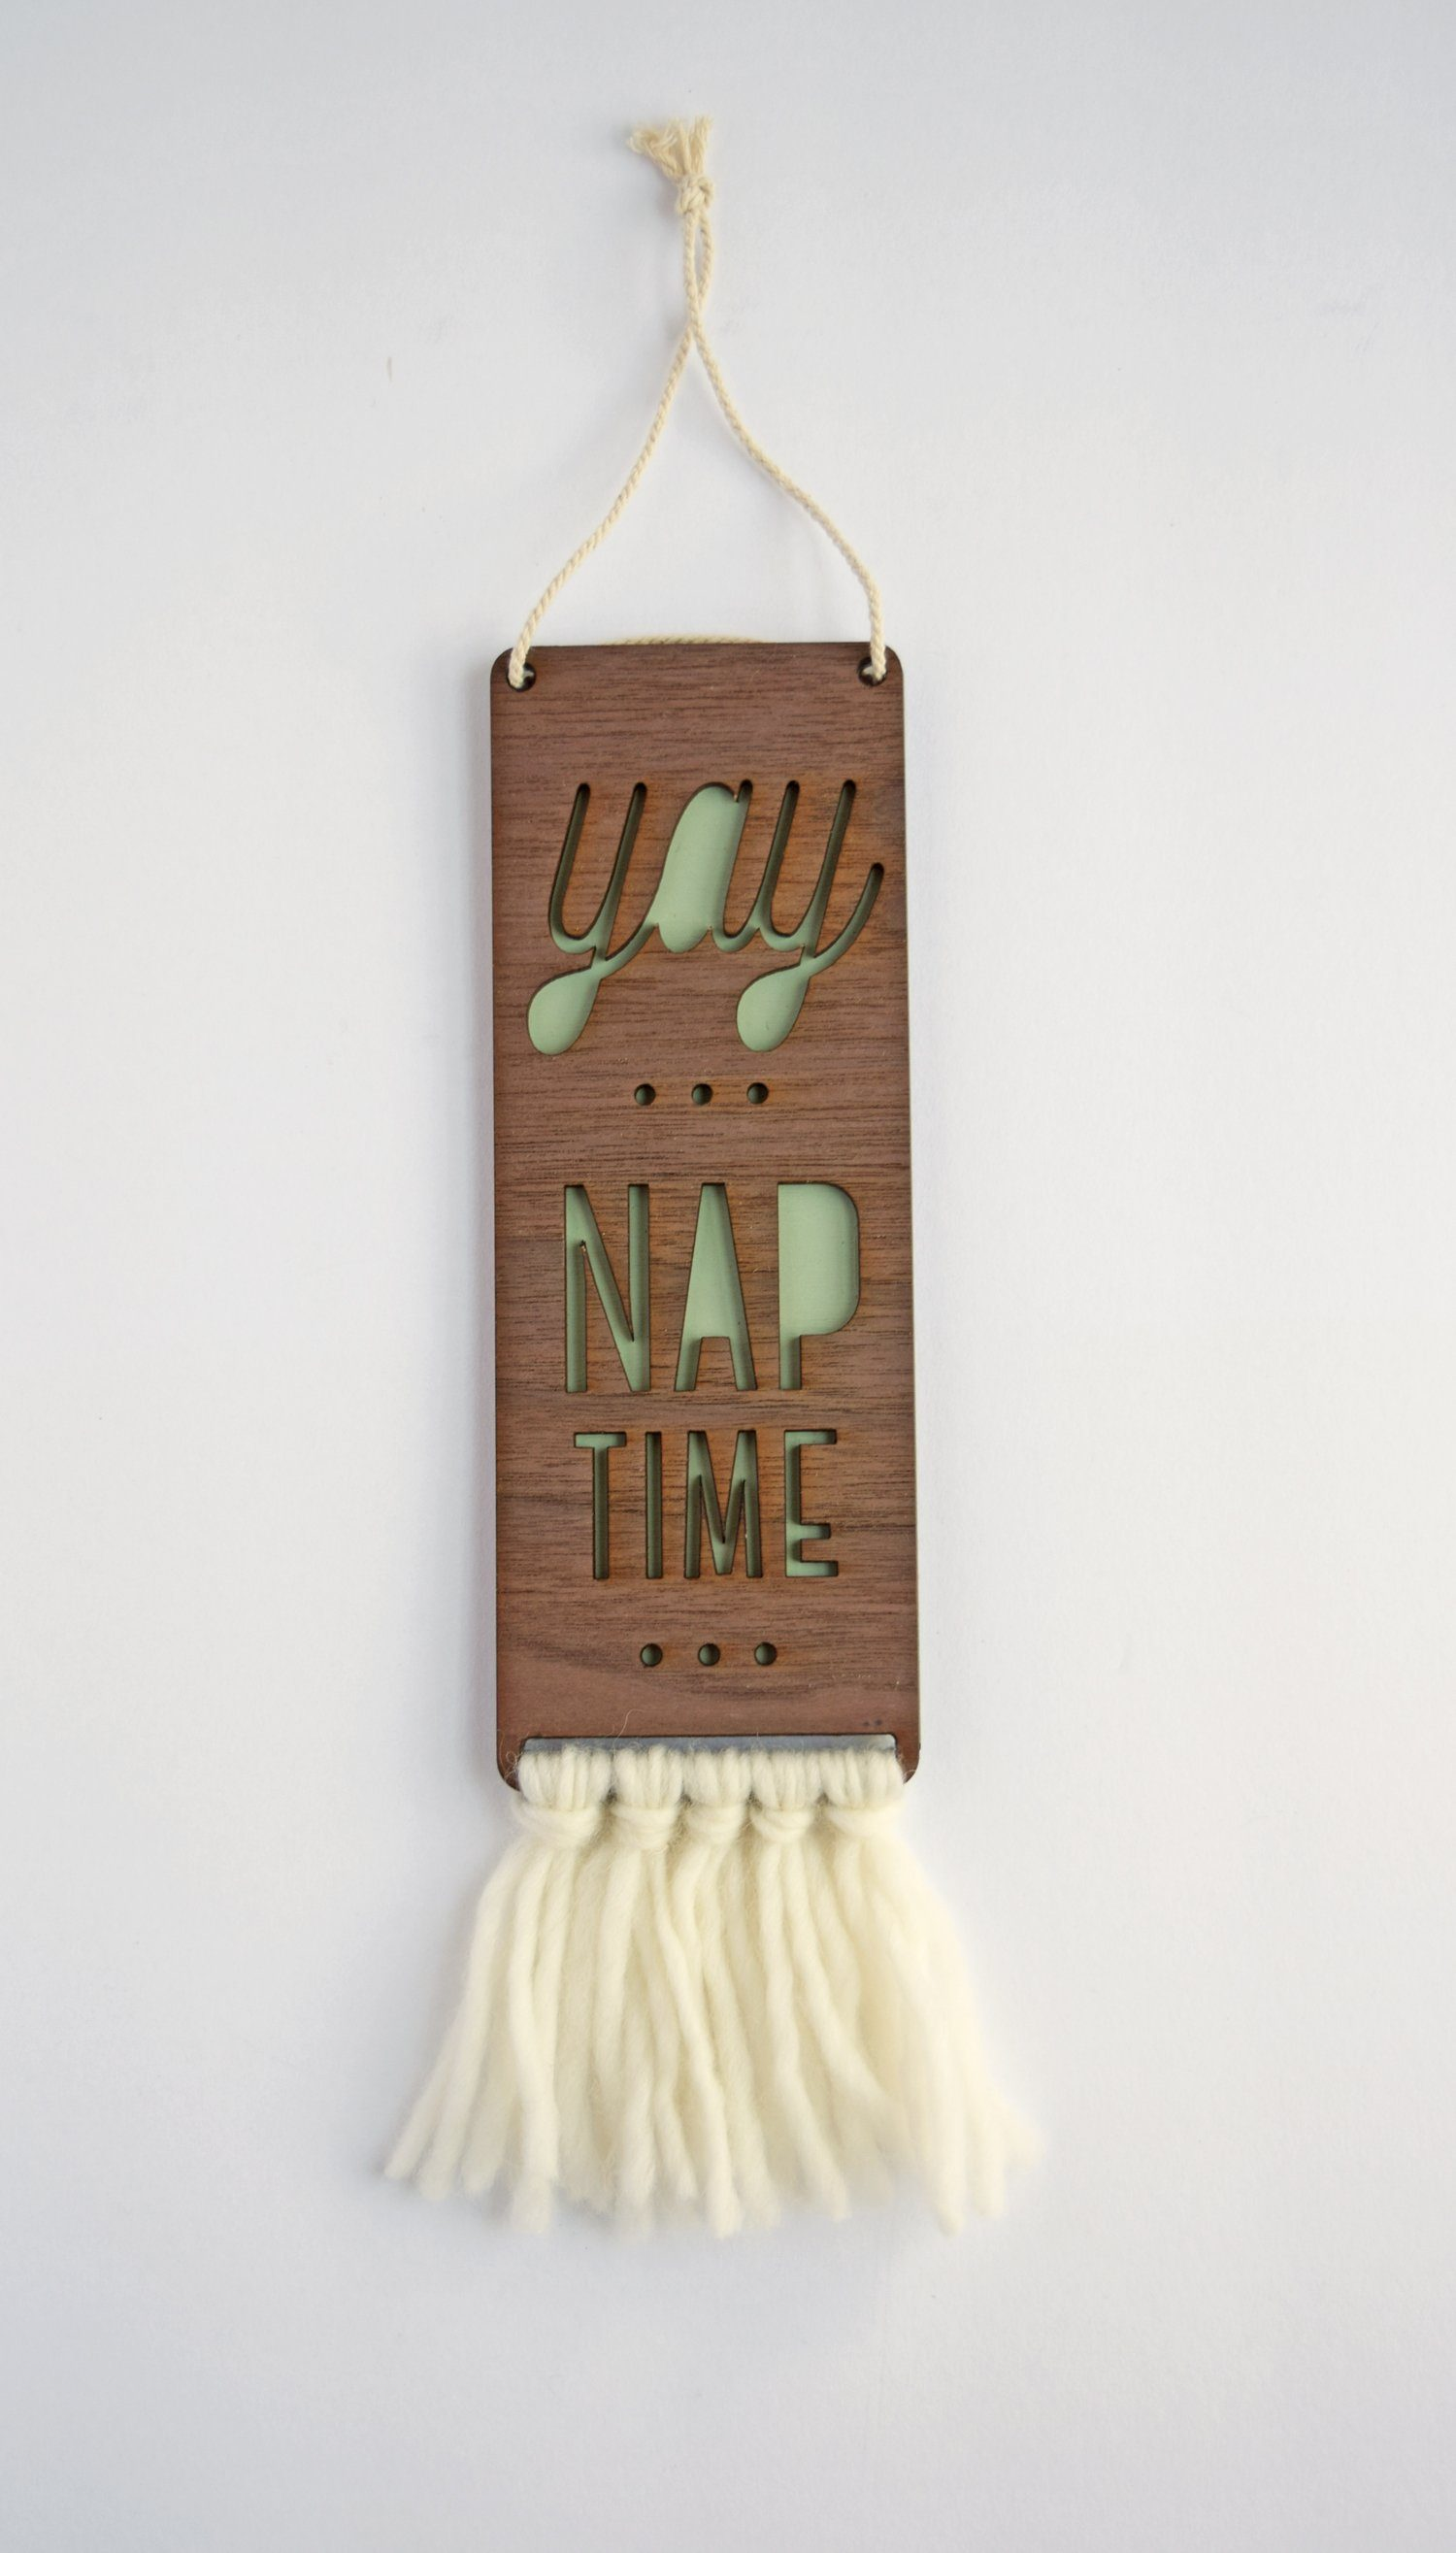 Nap Time Baby Door Sign - Project Nursery